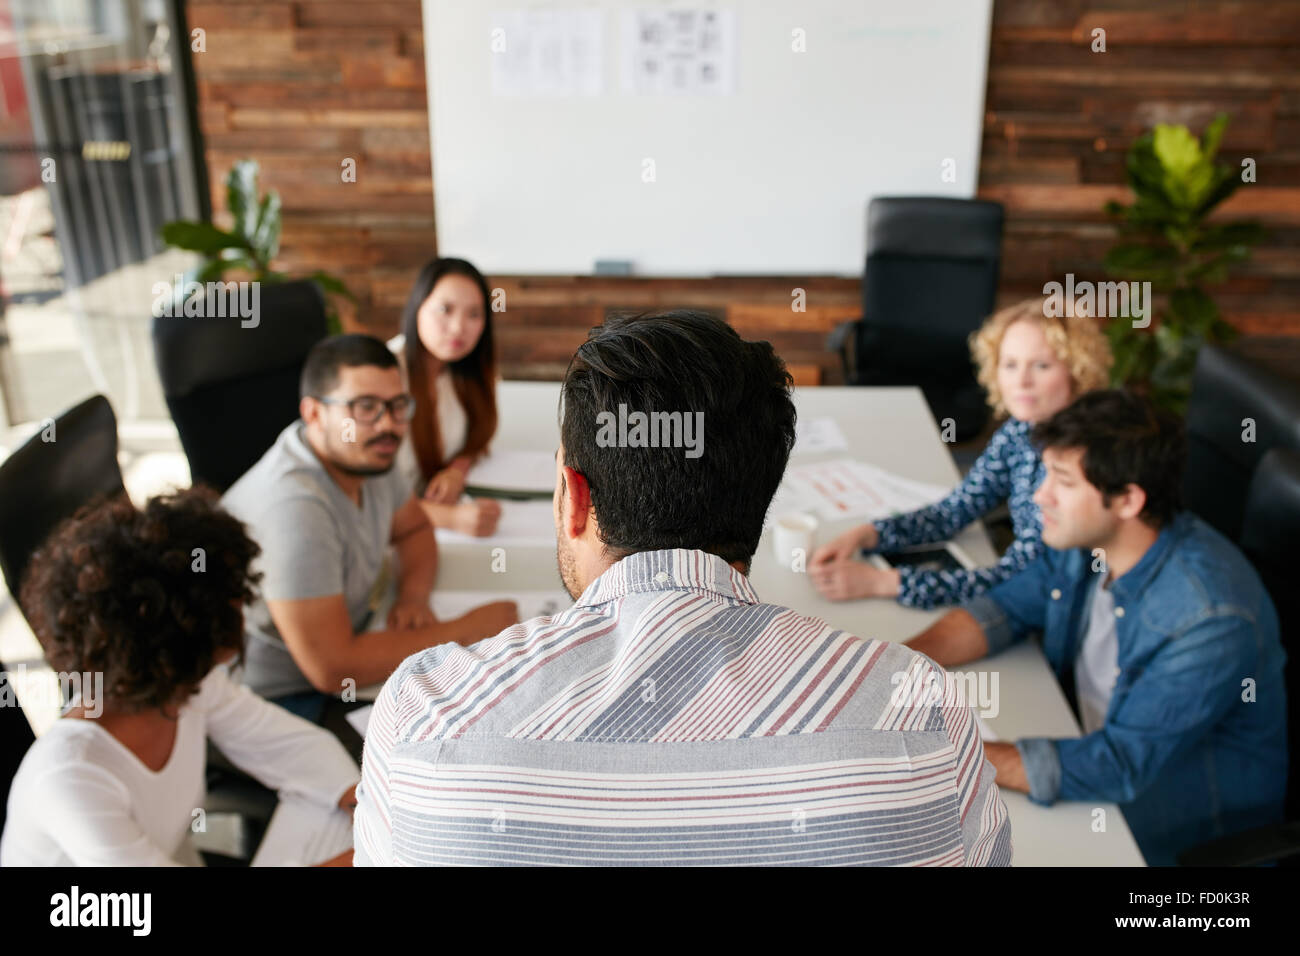 Rear view portrait of man explaining business plan to coworkers during a meeting in conference room.  Young people - Stock Image